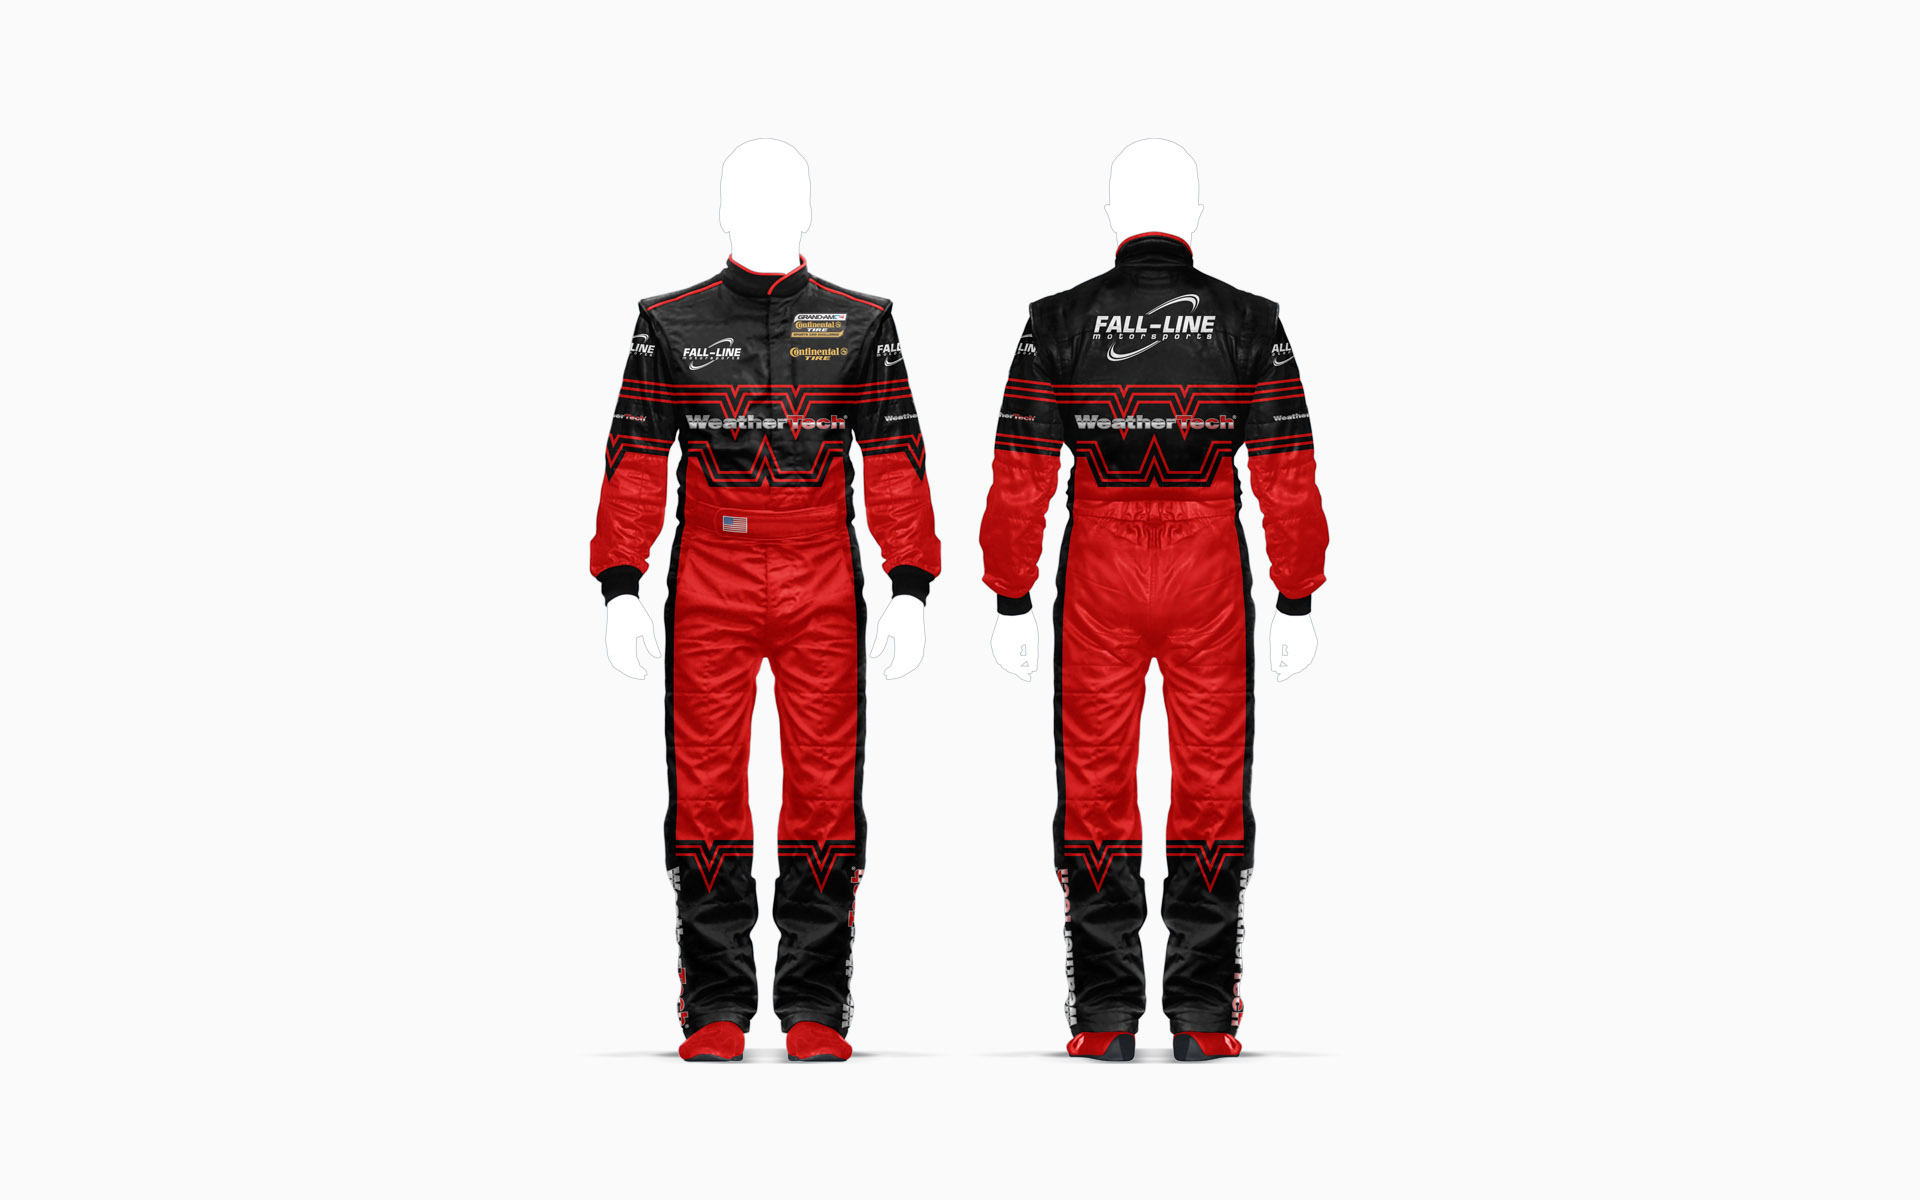 Fall-Line Motorsports WeatherTech Firesuit Visualization